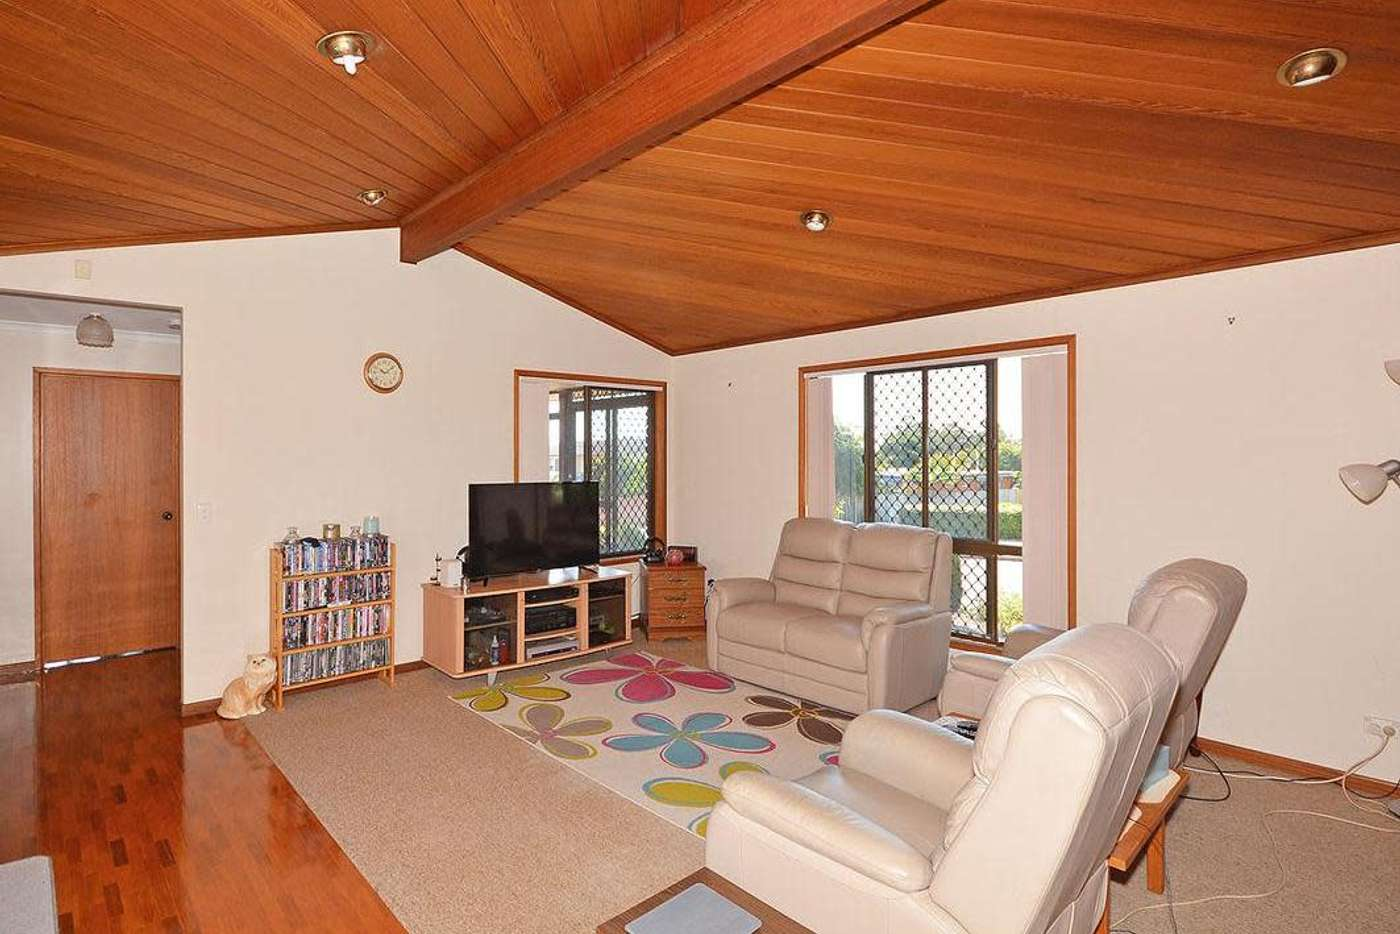 Sixth view of Homely house listing, 71 Hillcrest Avenue, Scarness QLD 4655